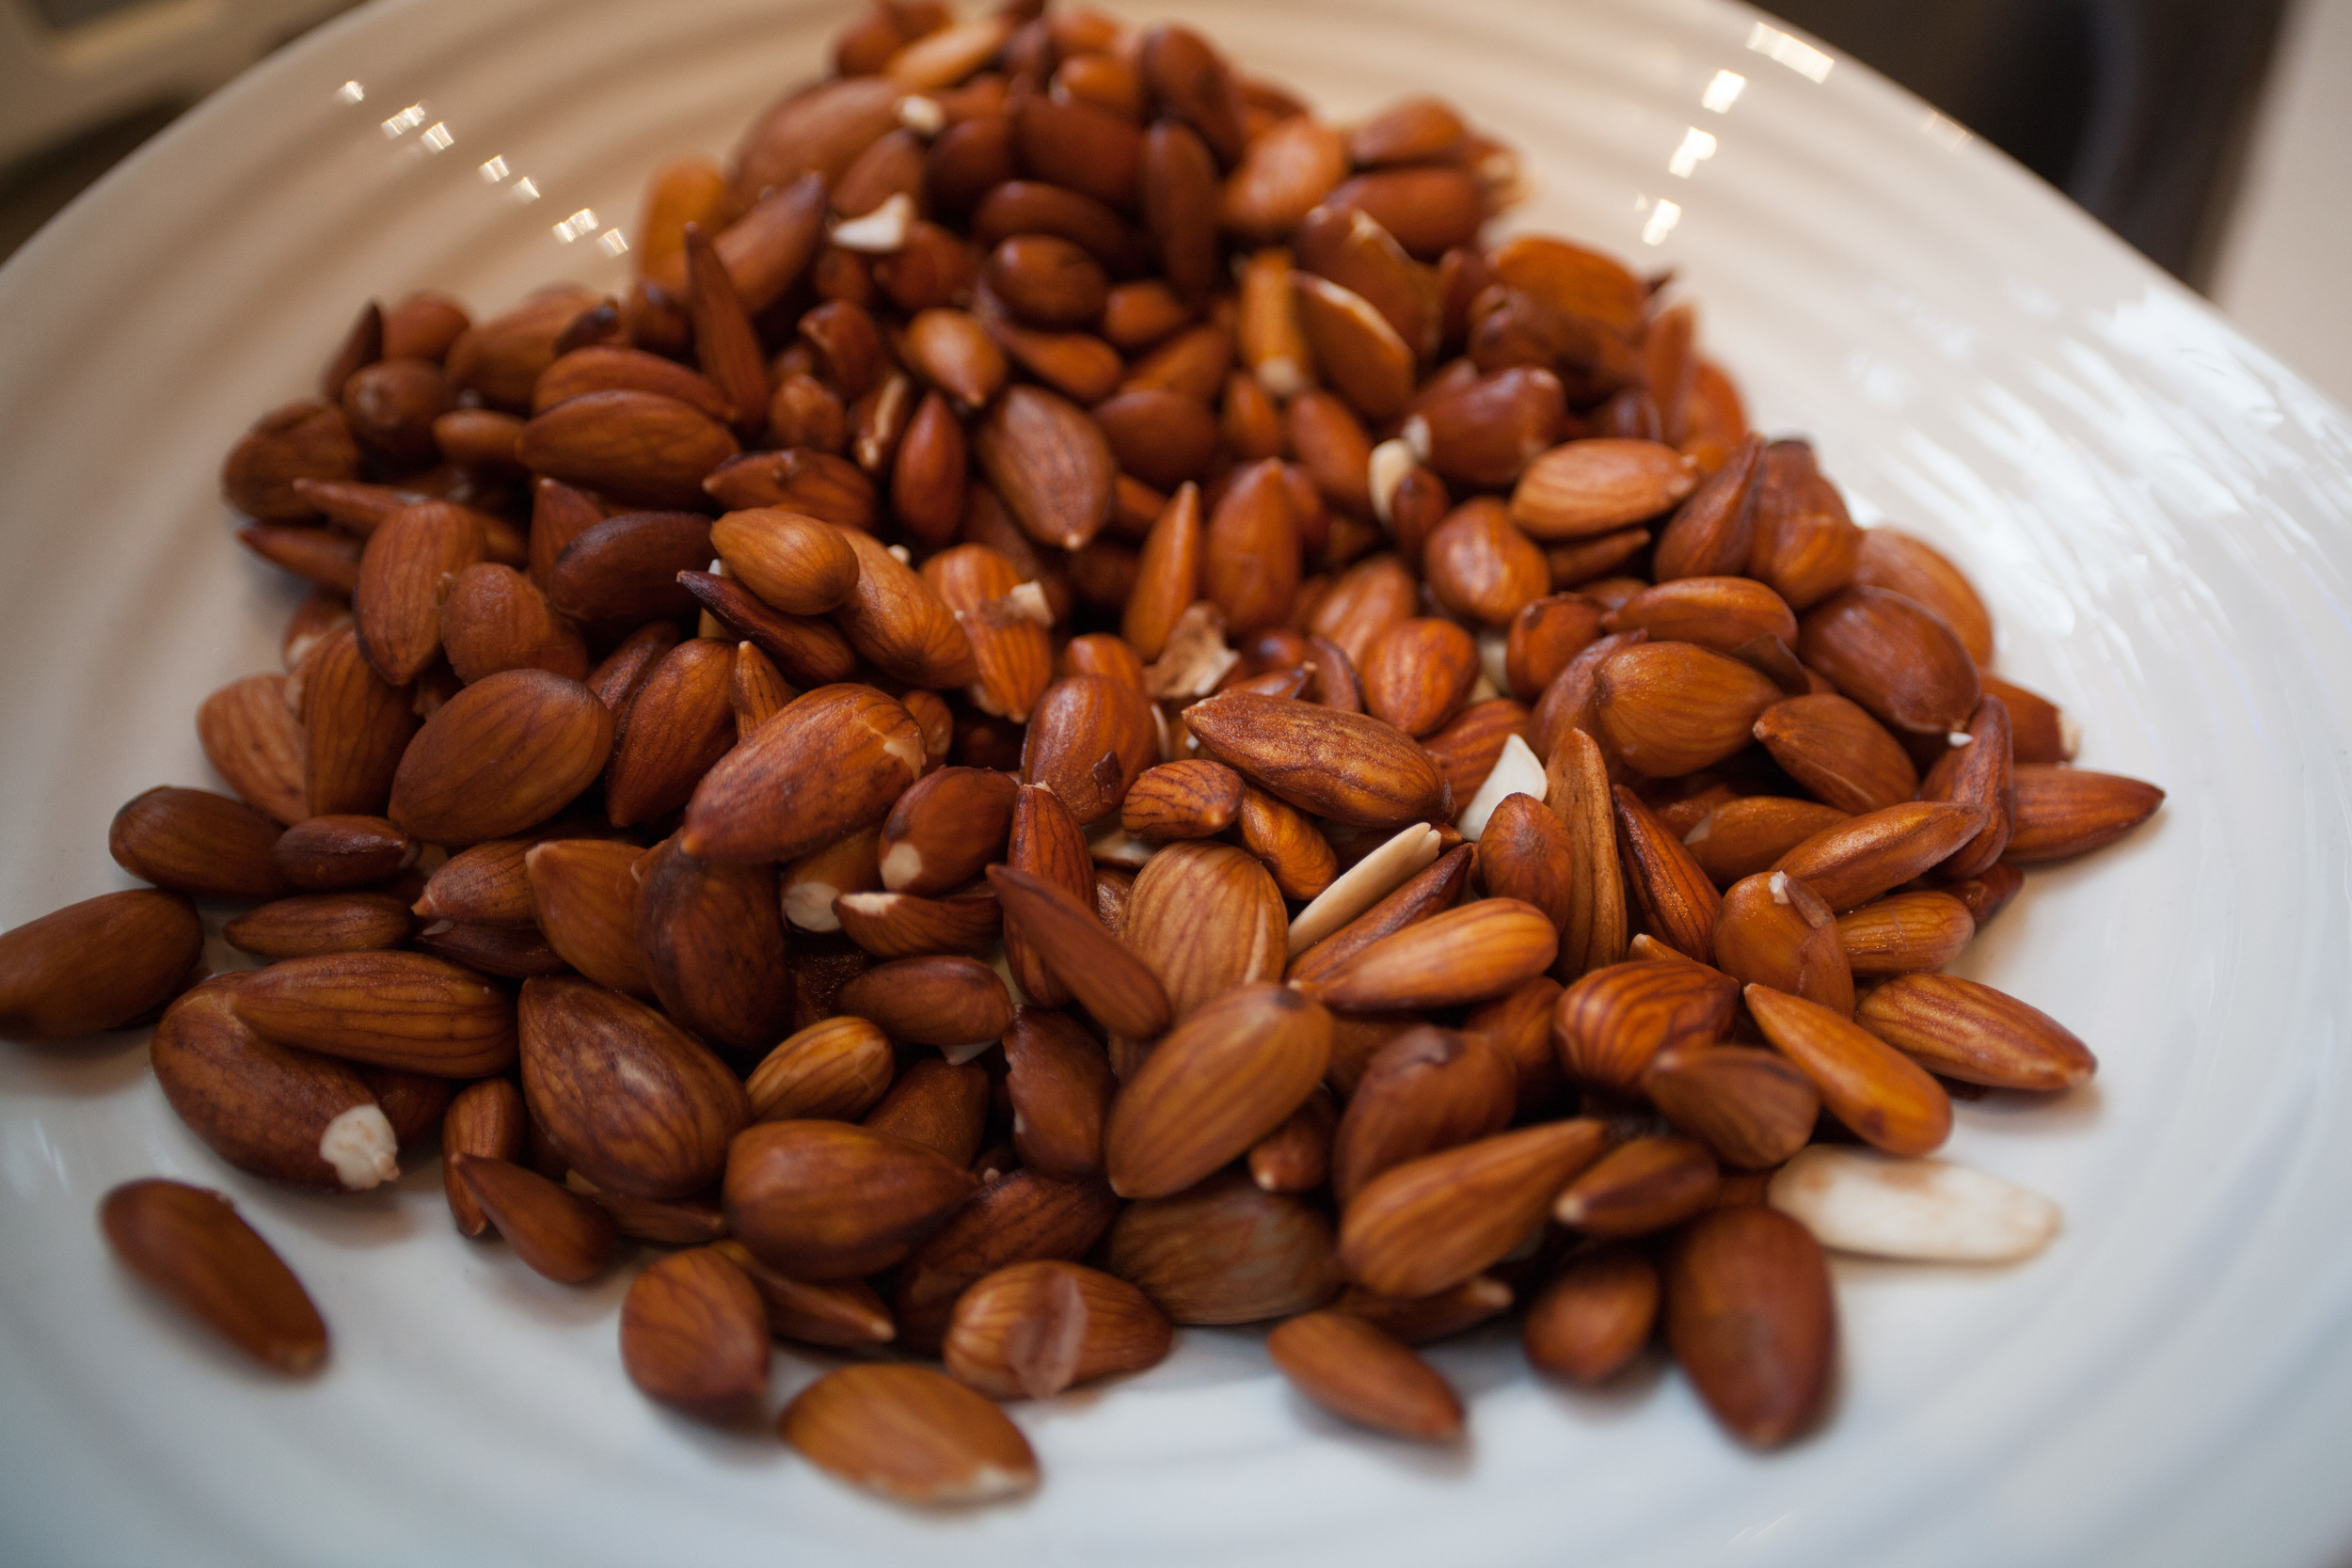 Almonds soaked overnight, rinsed off with cool water, drained, and set aside.